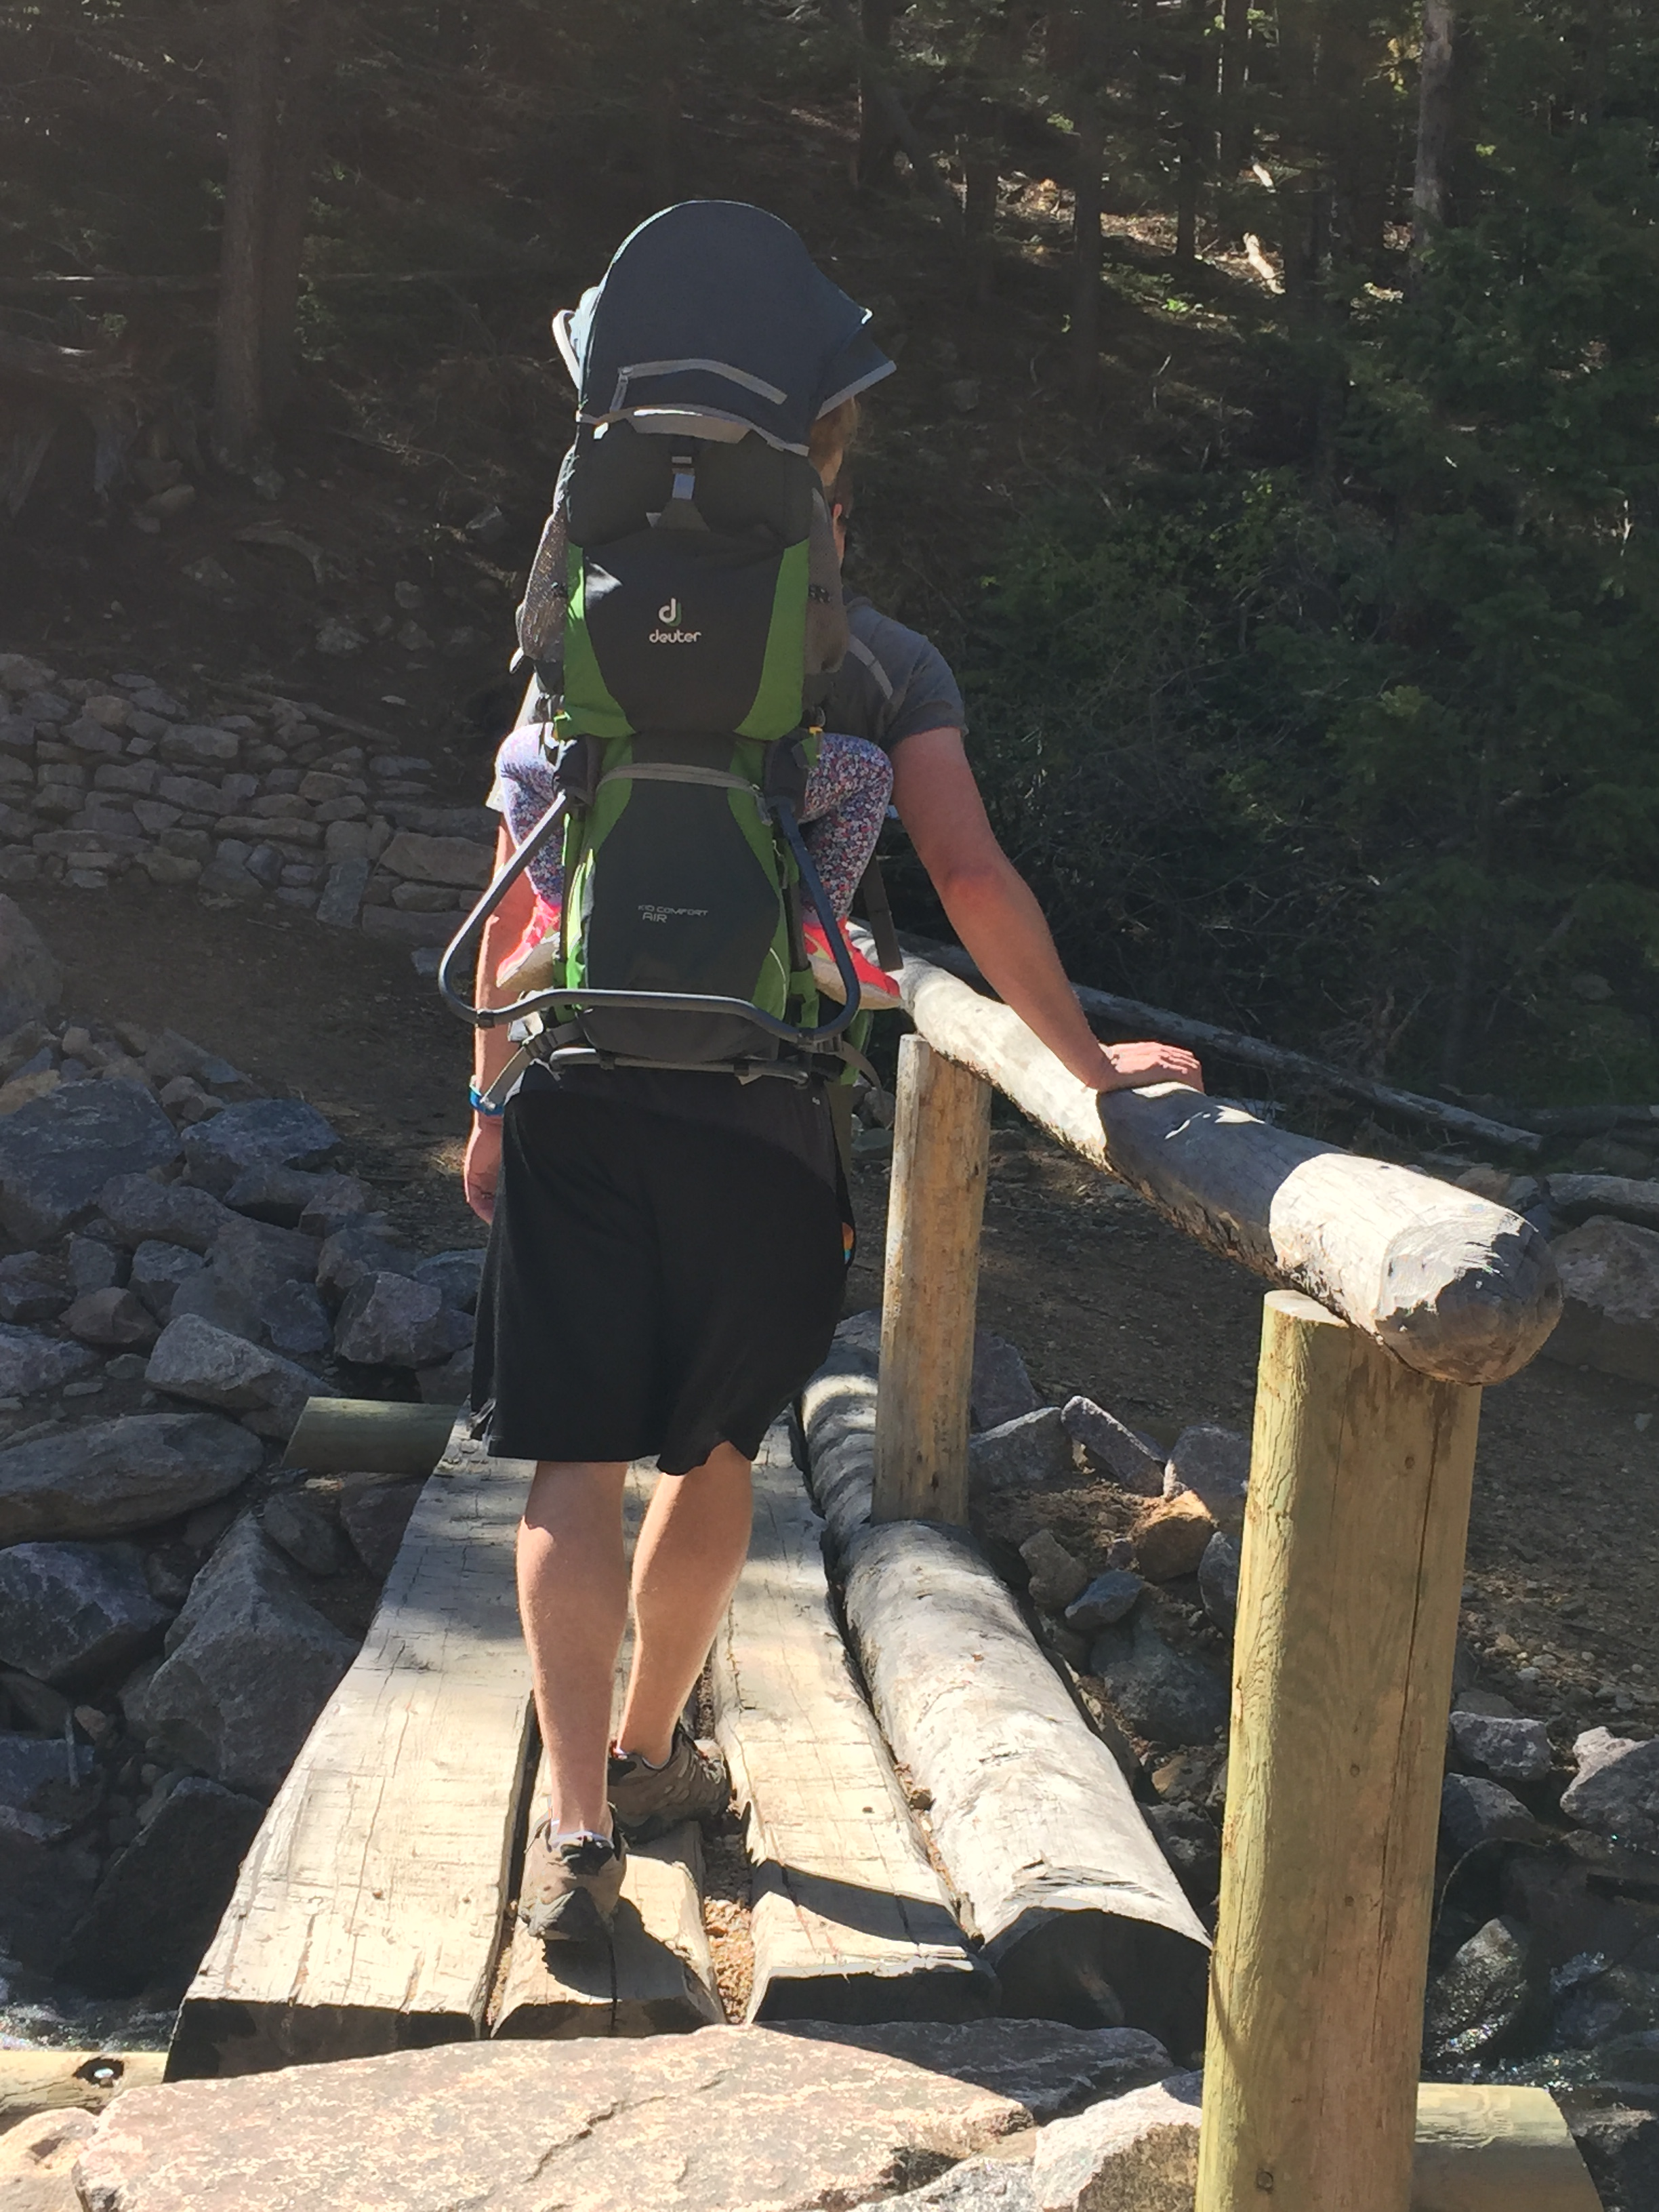 Homer Rouse trail, dog friendly hiking trail in Estes Park, CO